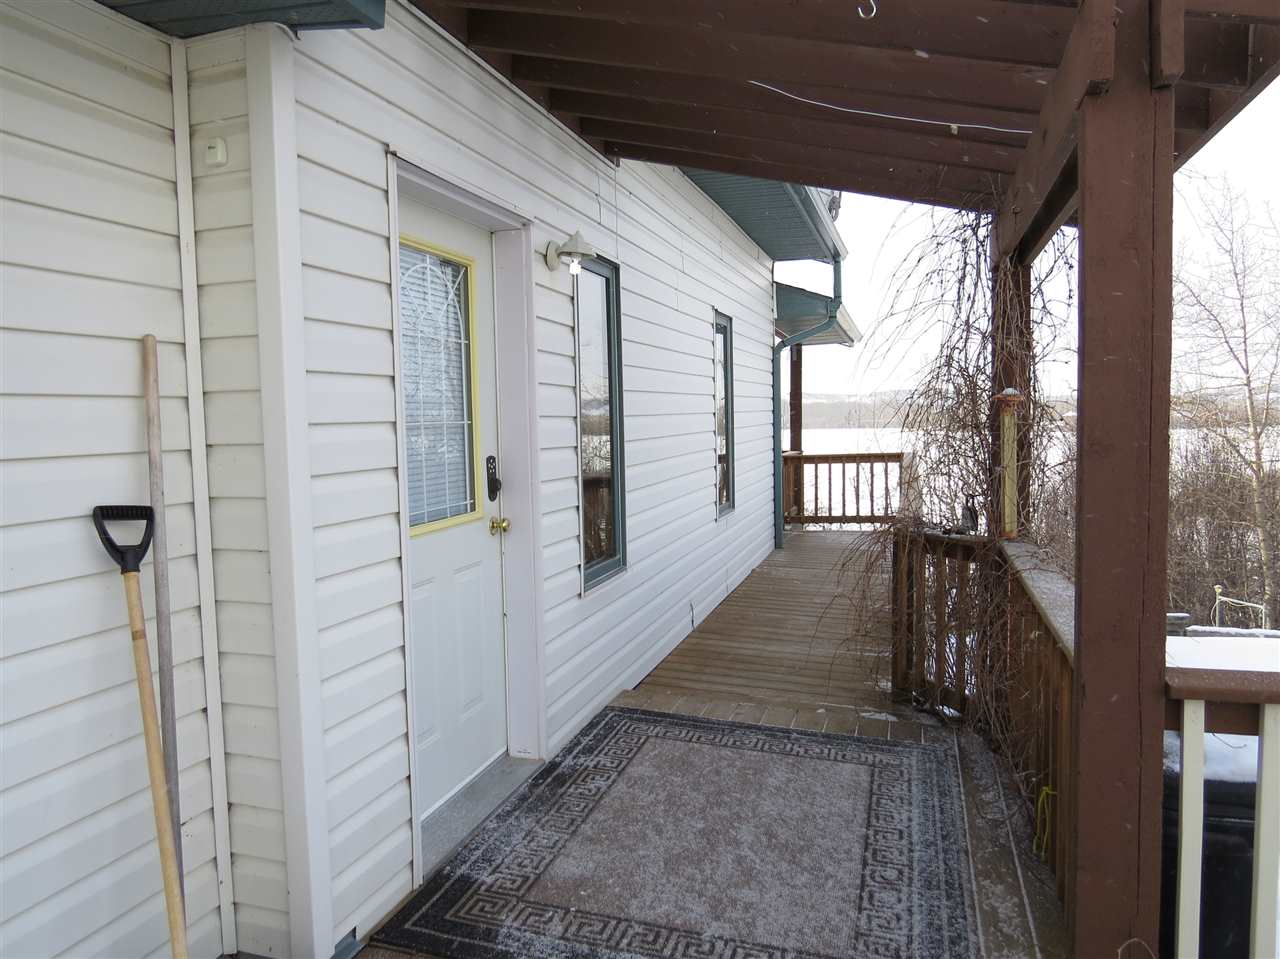 Photo 8: 14 RR 101 Twp 430A: Rural Flagstaff County House for sale : MLS® # E4049046